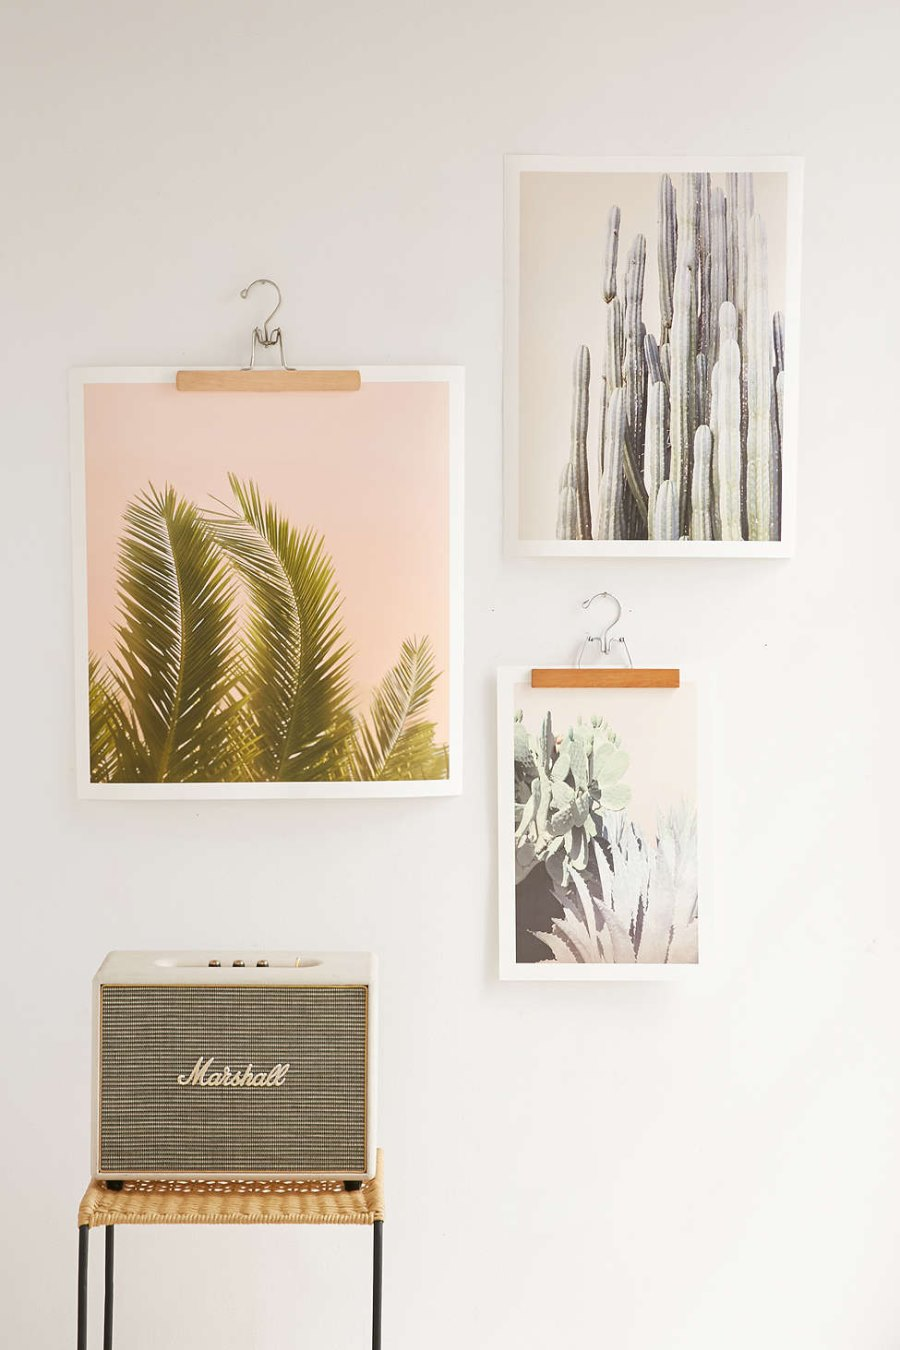 Urban outfitters fabric wall decor : Wall art from urban outfitters decoist